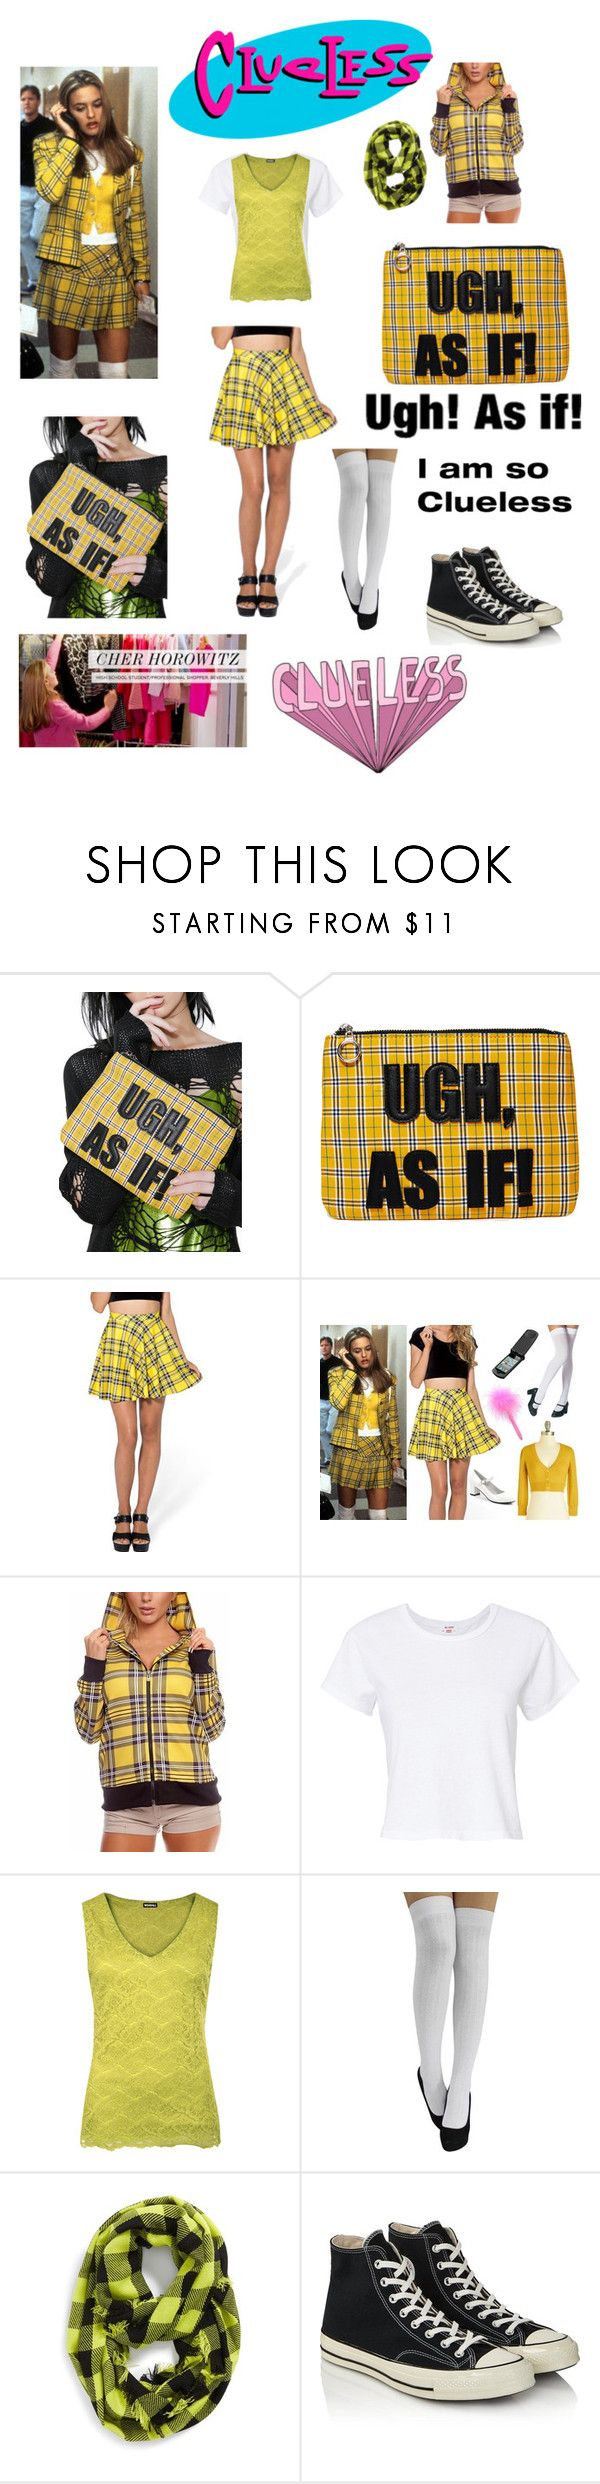 """""""Clueless Cher Horowitz 2017"""" by sarahluvv ❤ liked on Polyvore featuring Current Mood, RE/DONE, WearAll, Steve Madden, Converse, yellow, 90s, plaid, clueless and cherhorowitz"""